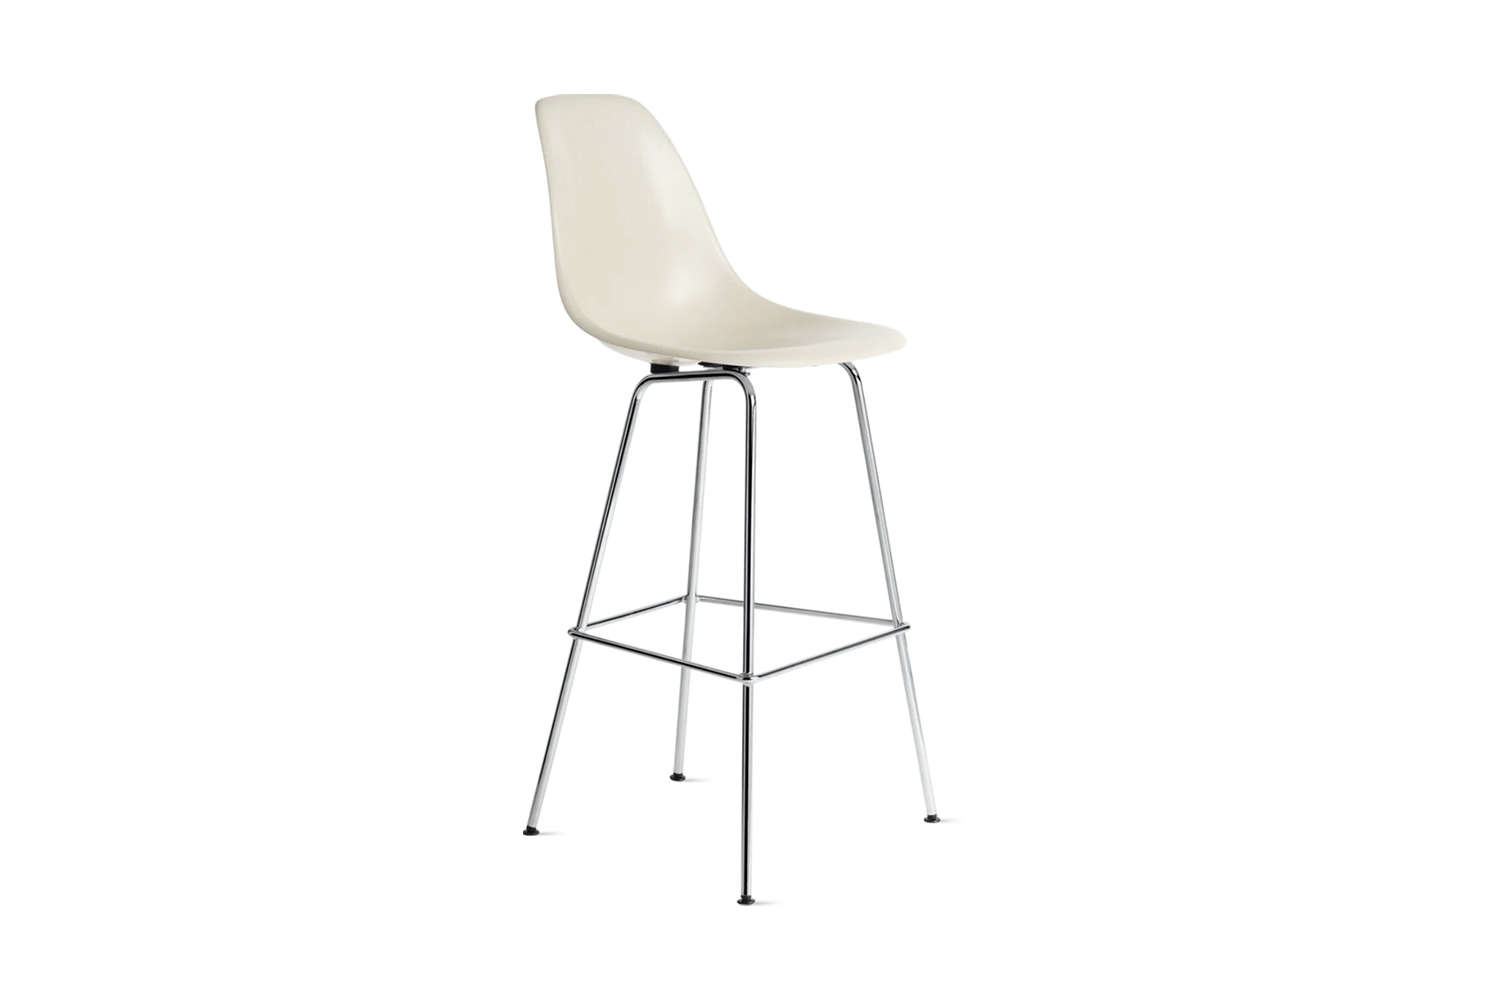 The Eames Shell Counter Height Stool is $545 at Design Within Reach.